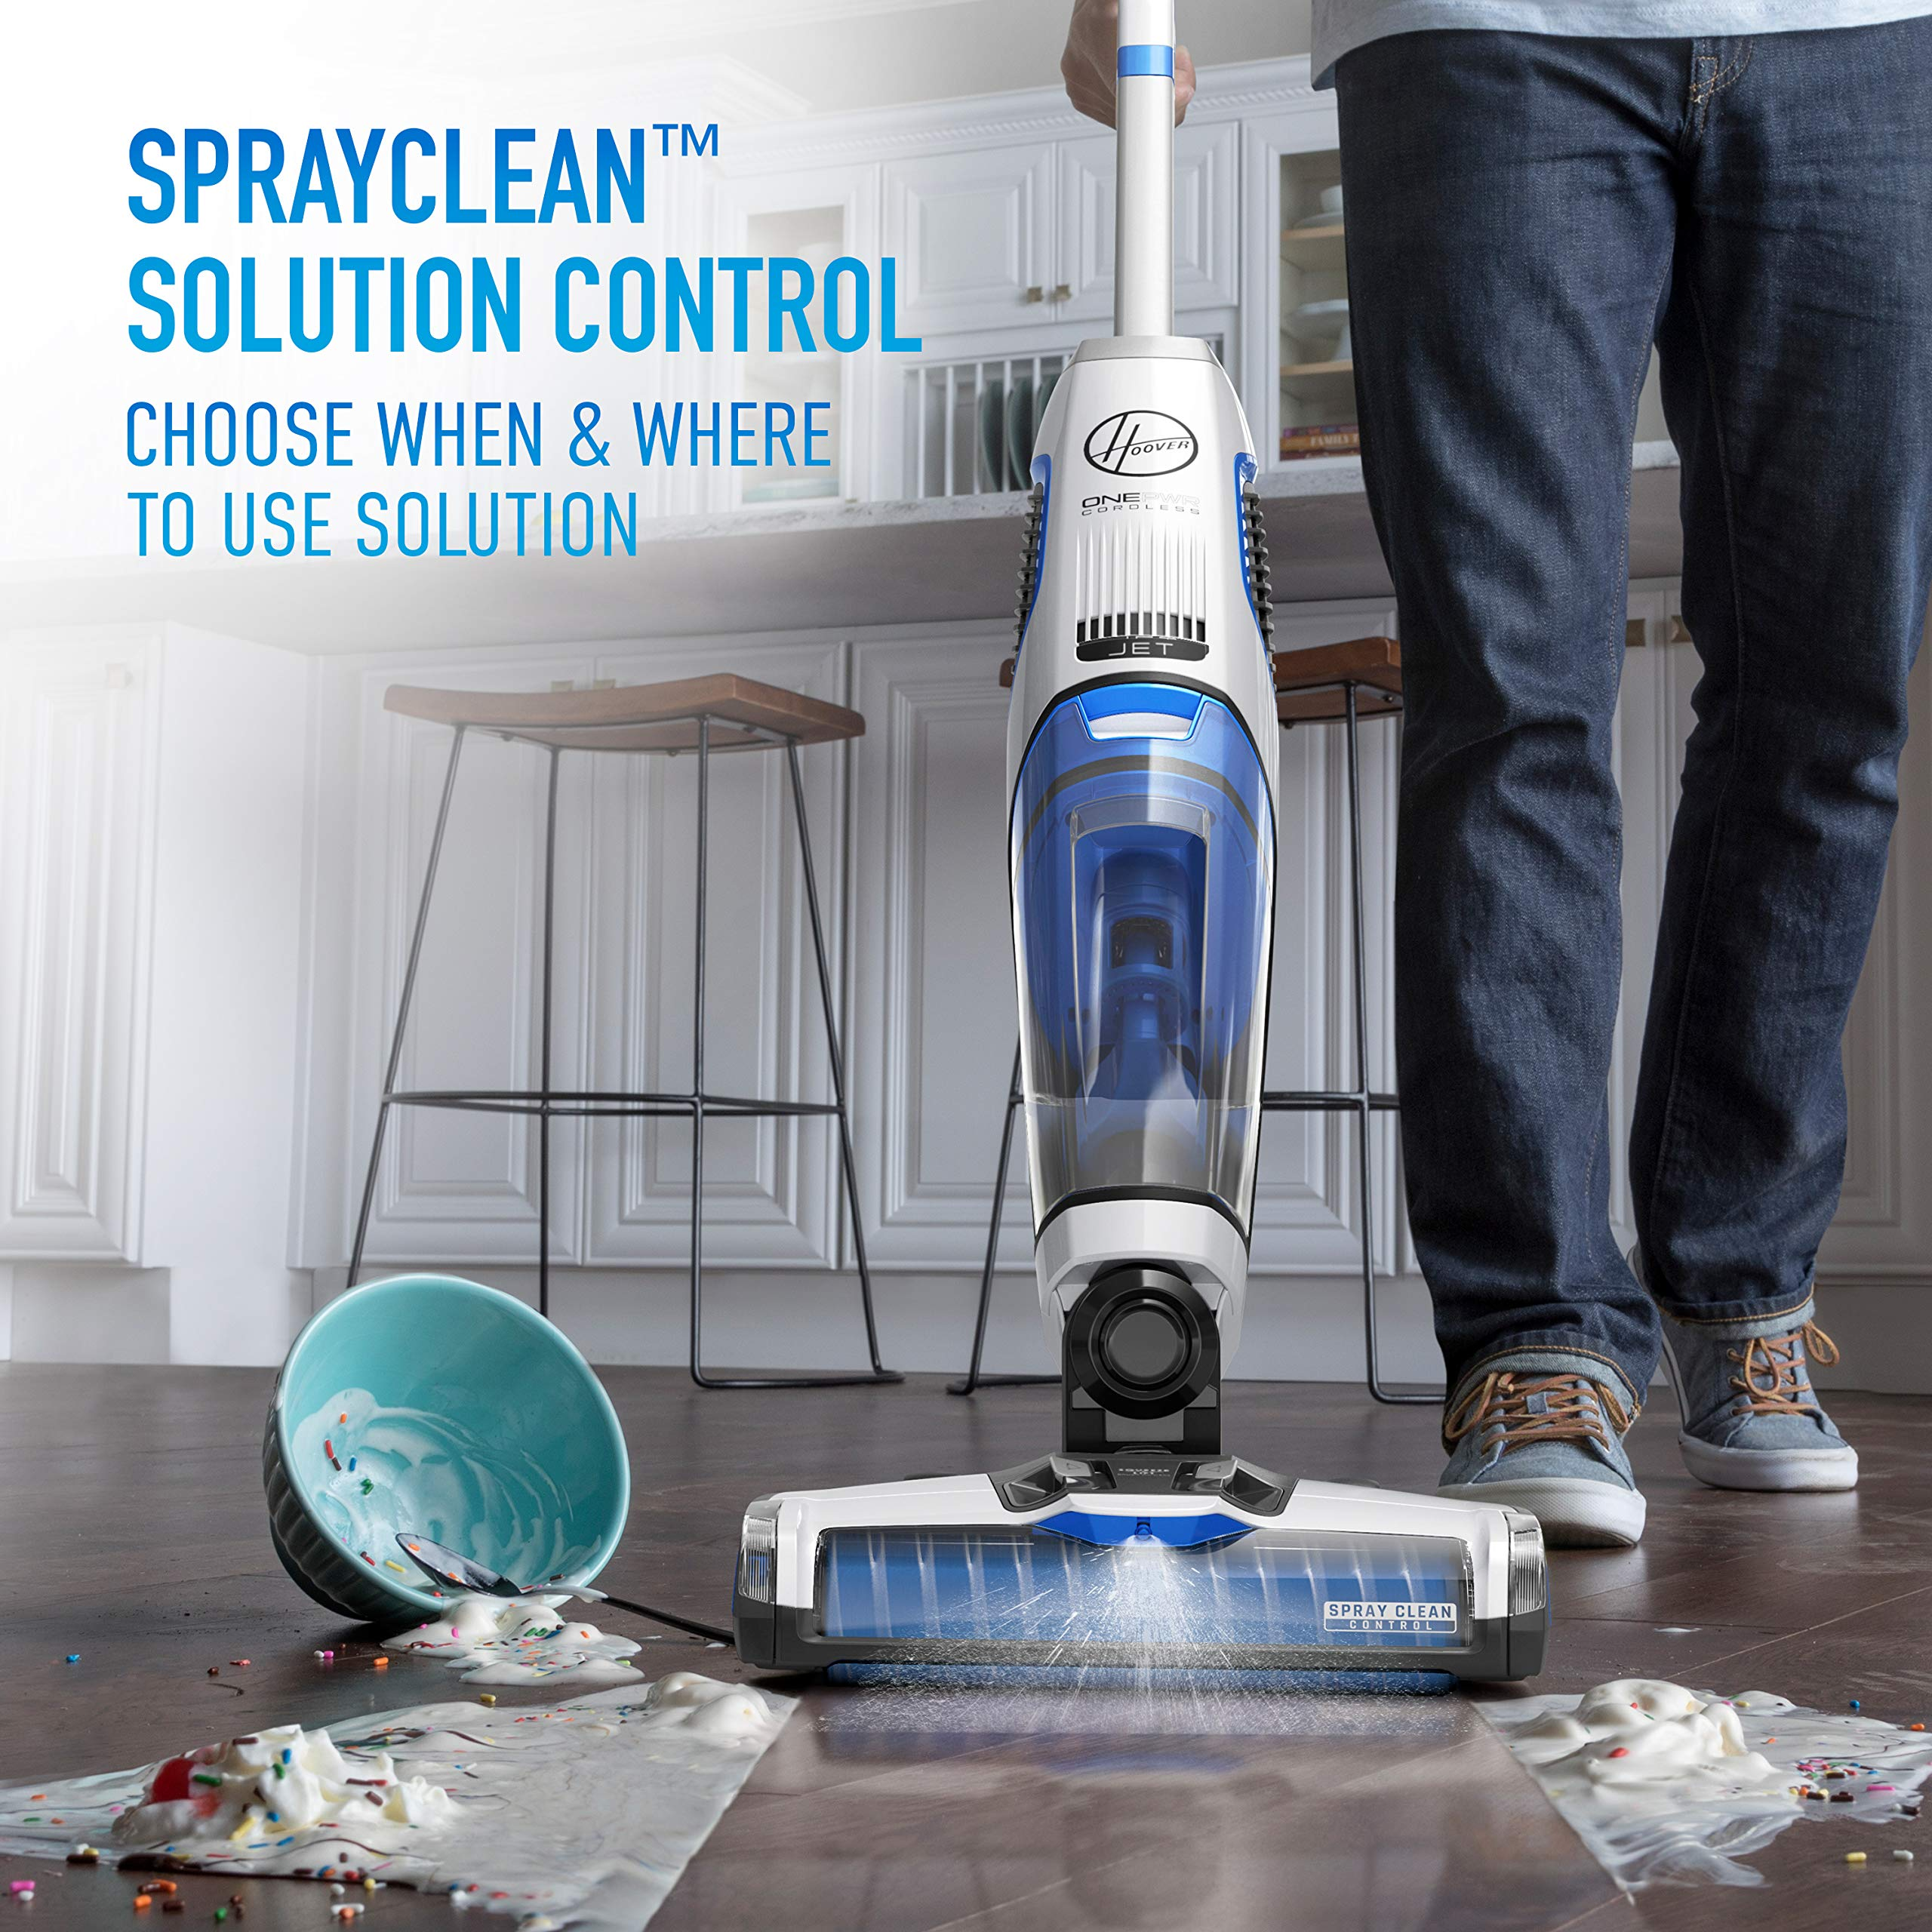 Hoover ONEPWR Cordless FloorMate Jet Hard Floor Cleaner, Wet Vacuum, BH55210, White by Hoover (Image #4)